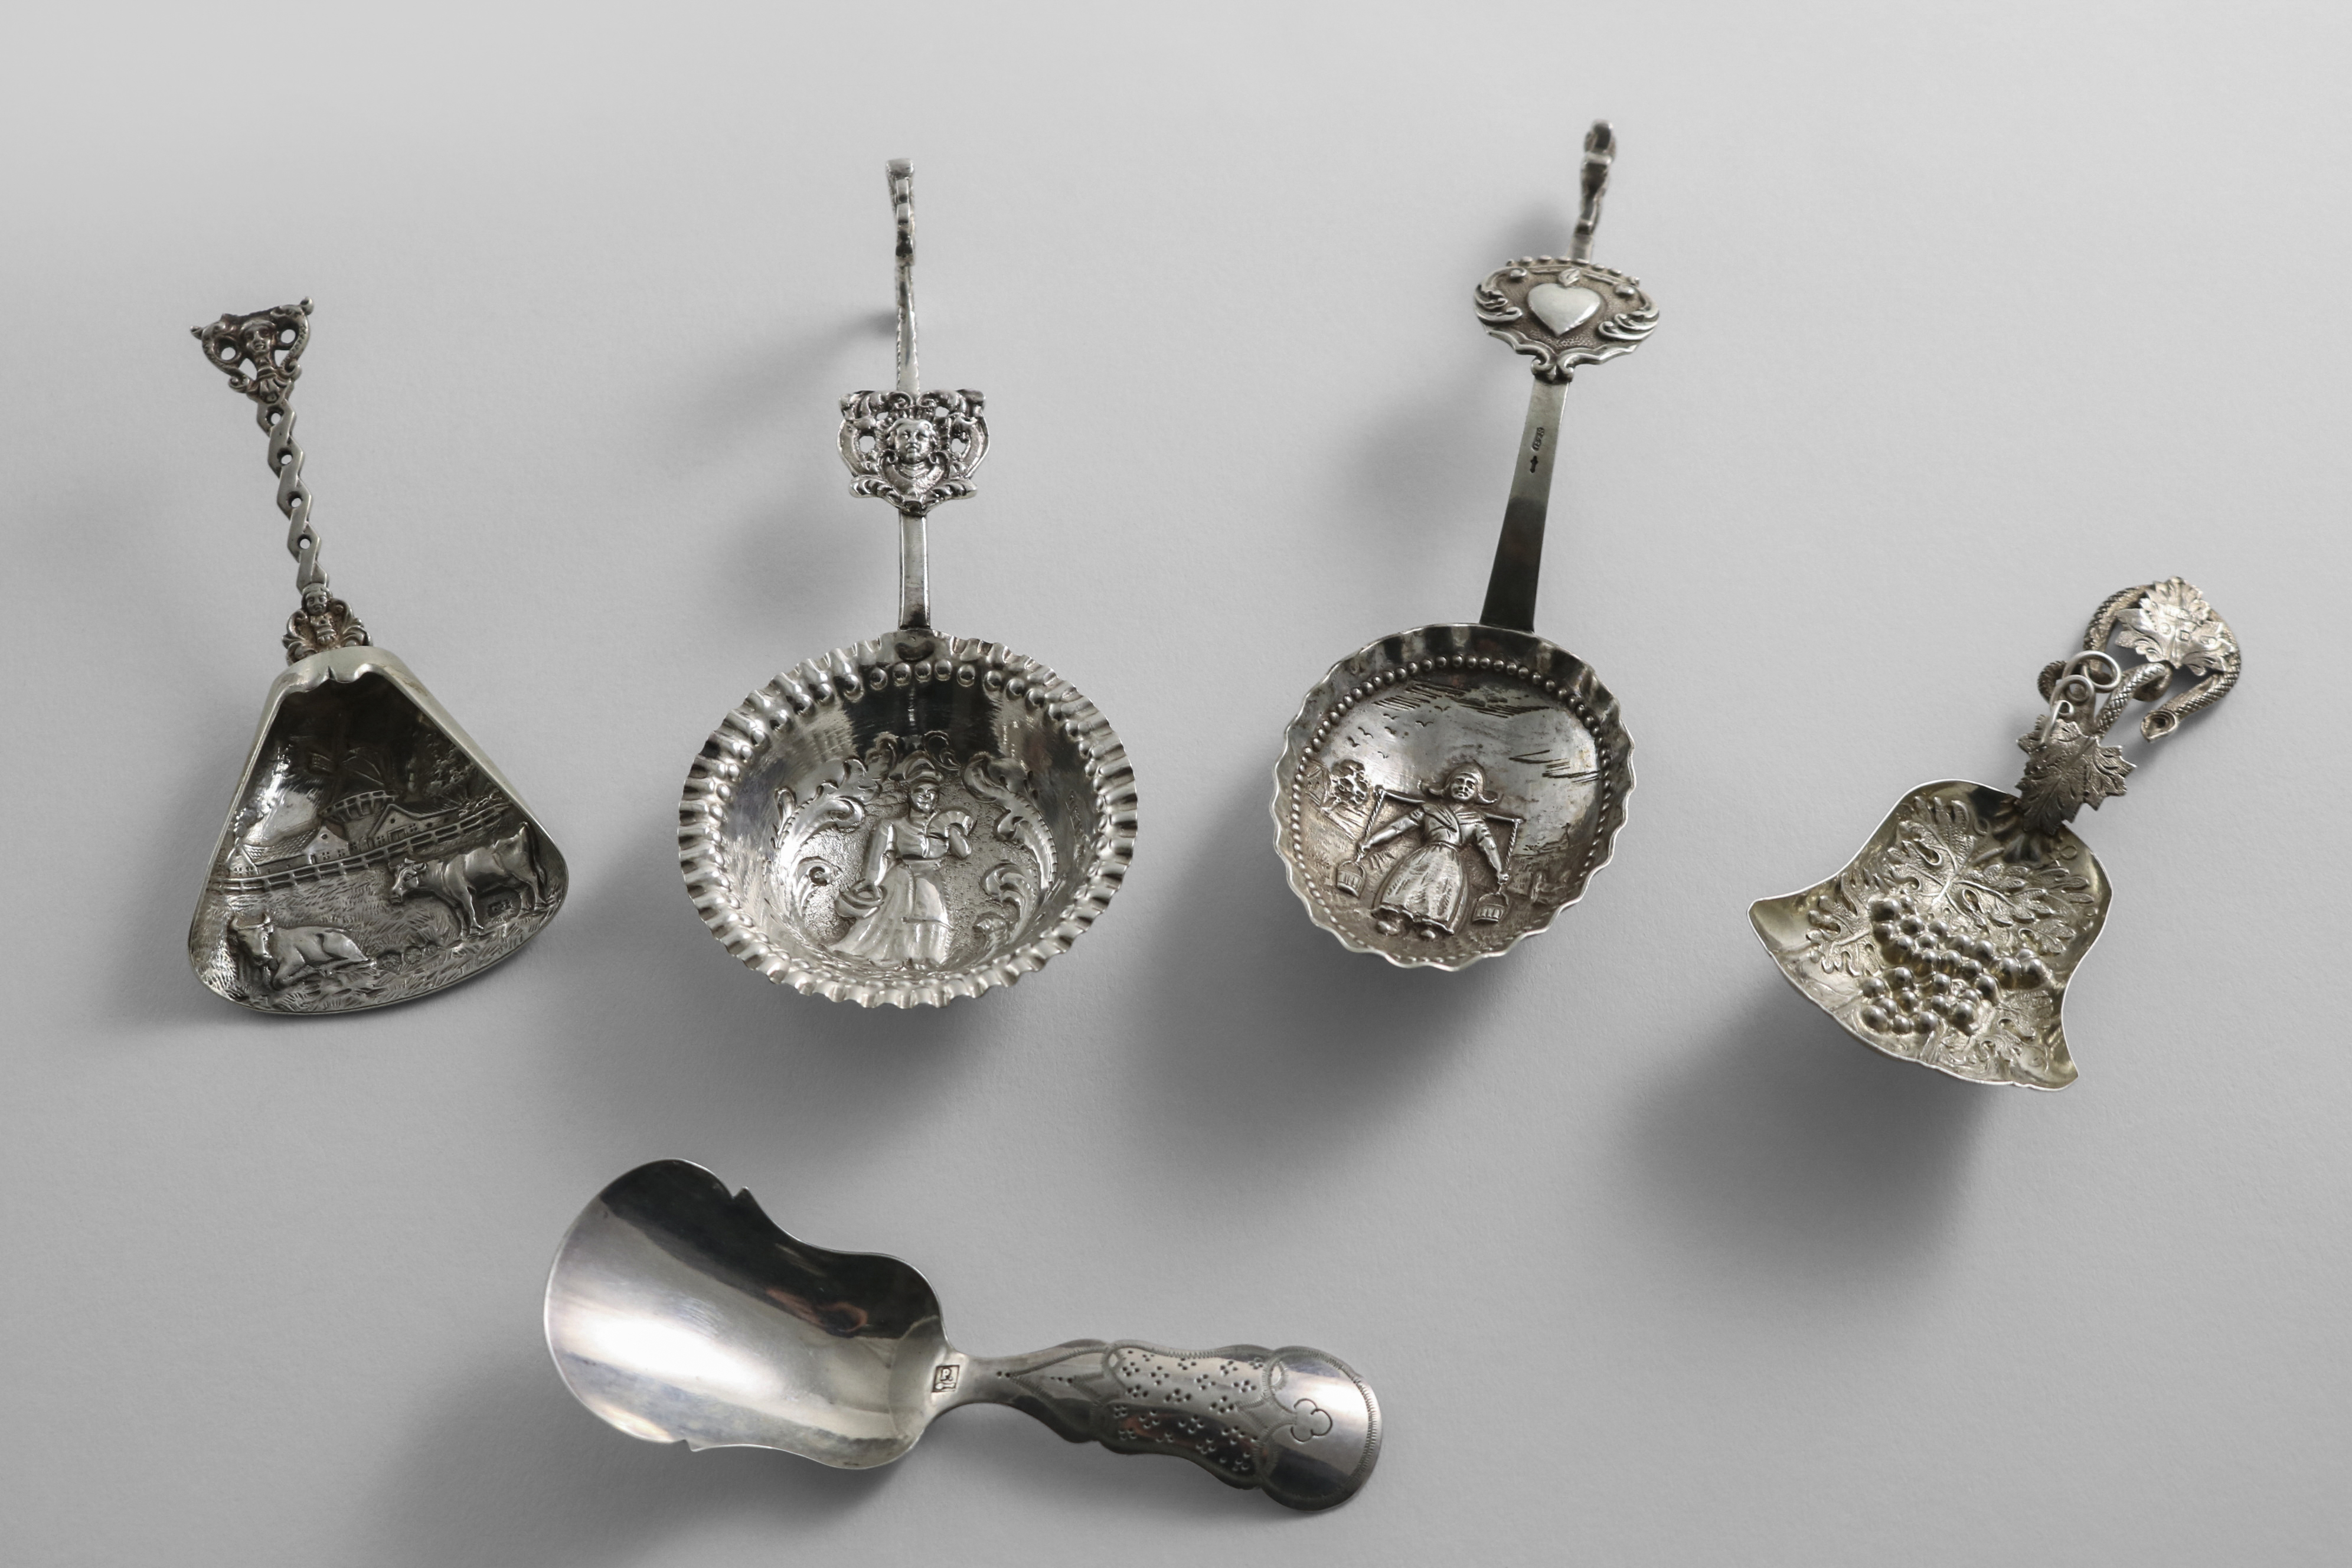 Lot 19 - A VICTORIAN SILVER CADDY SPOON with an embossed, fan-shaped bowl and a tendril, by Hilliard &